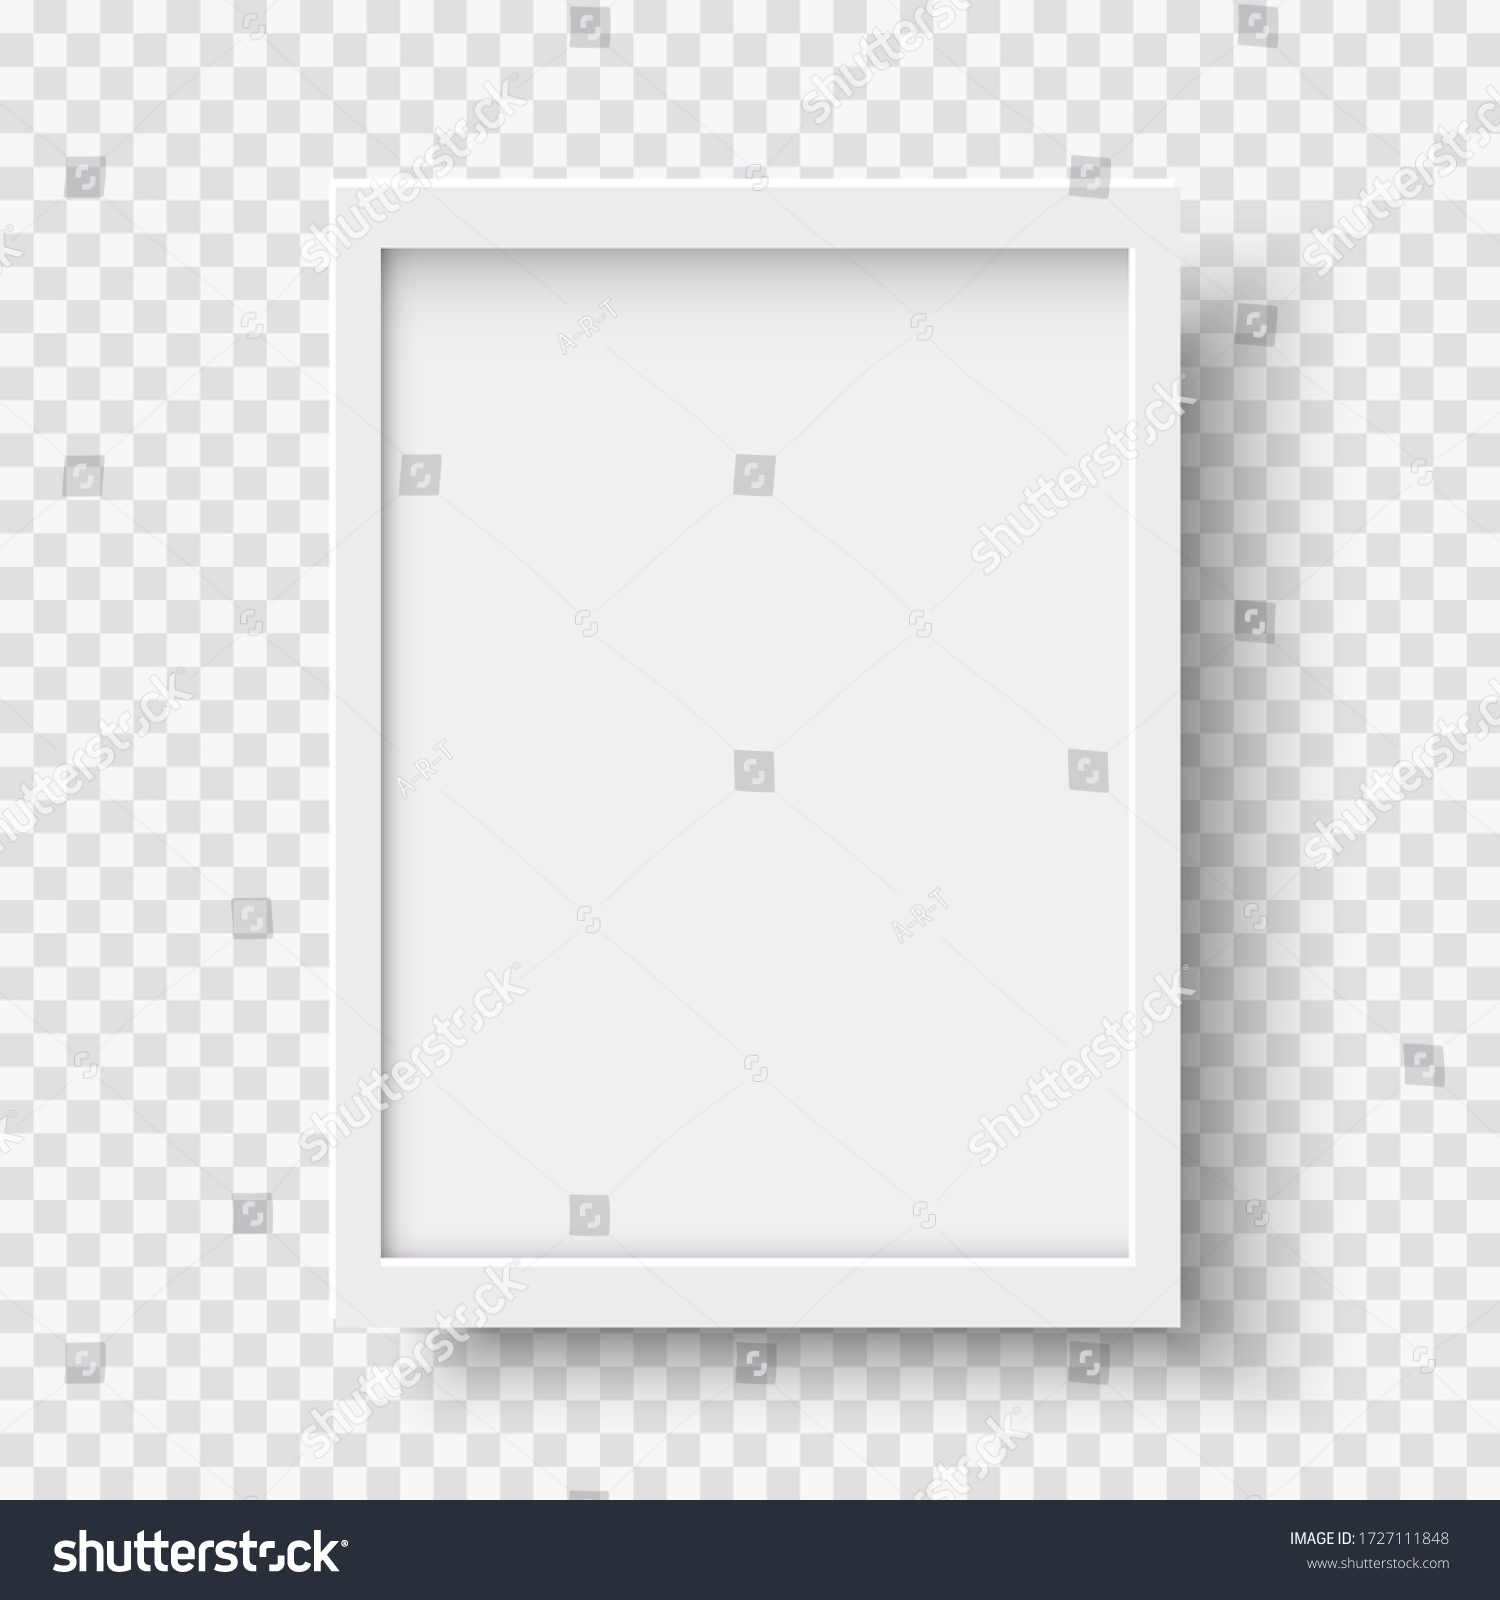 White blank picture frame, realistic vertical picture frame, A4. Empty white picture frame mockup template isolated. Vector illustration #1727111848